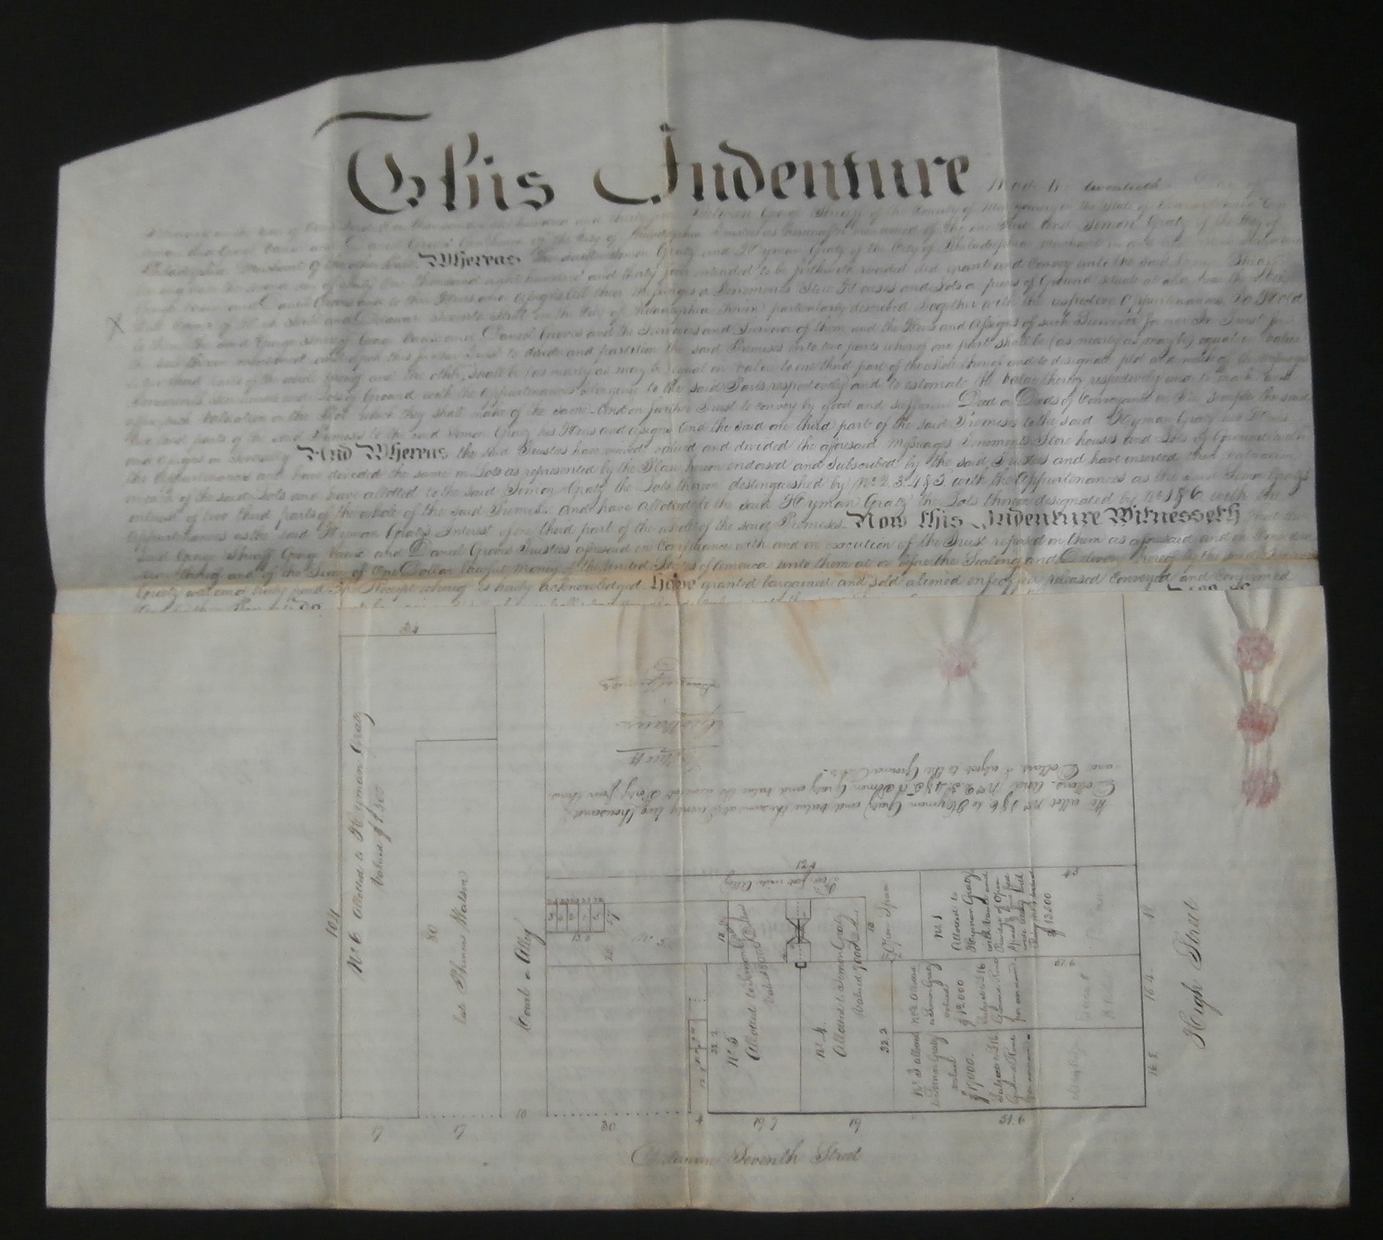 Collections of Early American Documents & Indentures